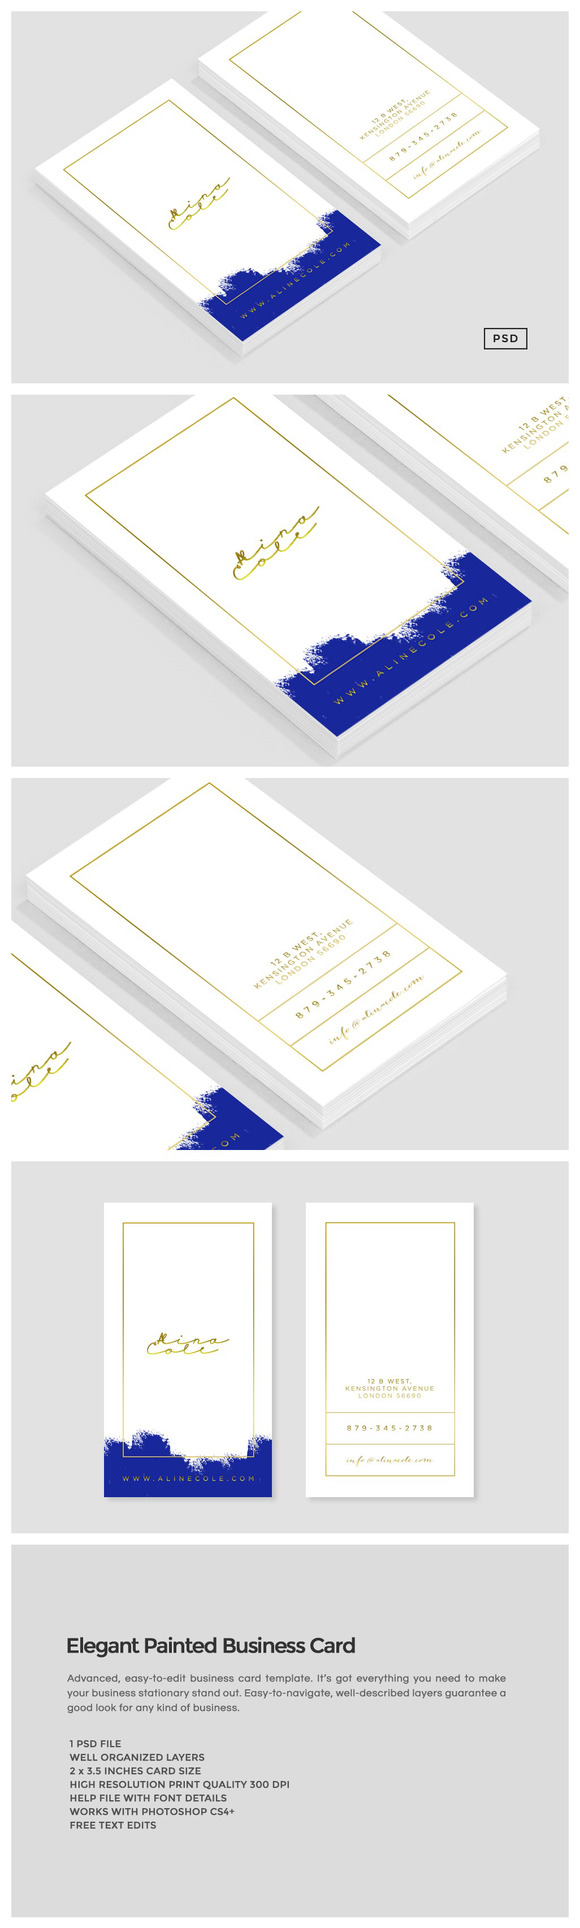 Des Cartes De Visites Lgantes Bleu Et Or Template Acheter Personnaliser Soi Mme Facilement Avec Photoshop Elegant Painted Business Card By